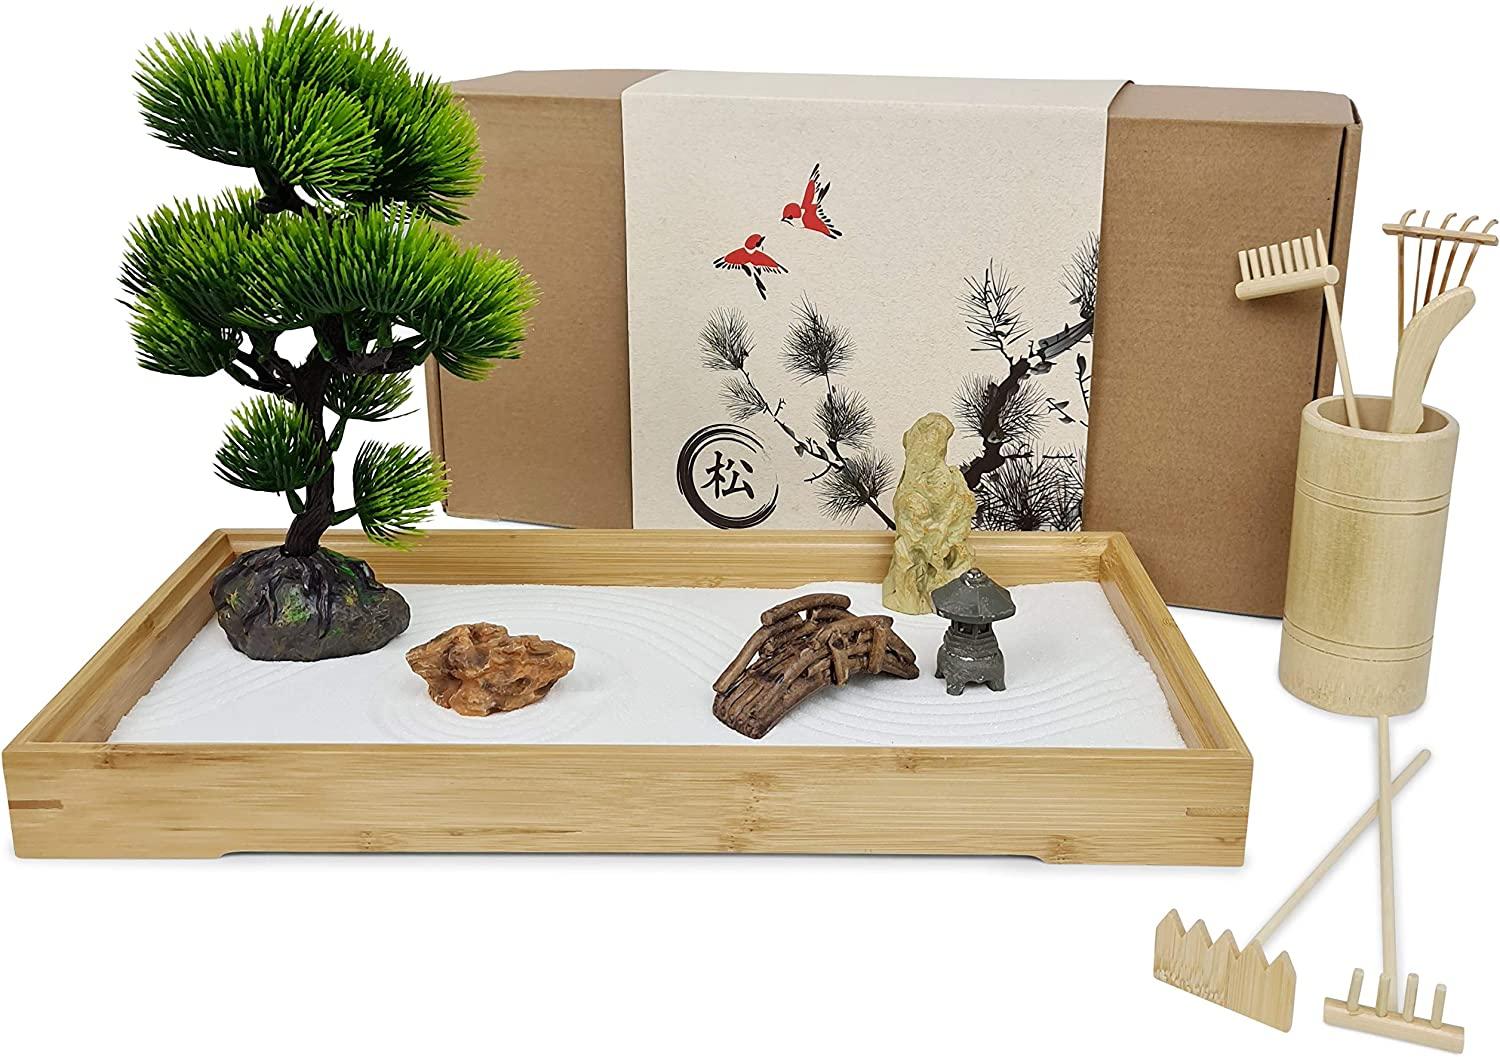 "Japanese Zen Garden for Desk - Extra Large 16"" x 8"" Bamboo Tray with White Sand, Artificial Bonsai Tree, Rocks, Rakes and Accessories - Meditation Sand Garden Kit for Home and Office Decor"